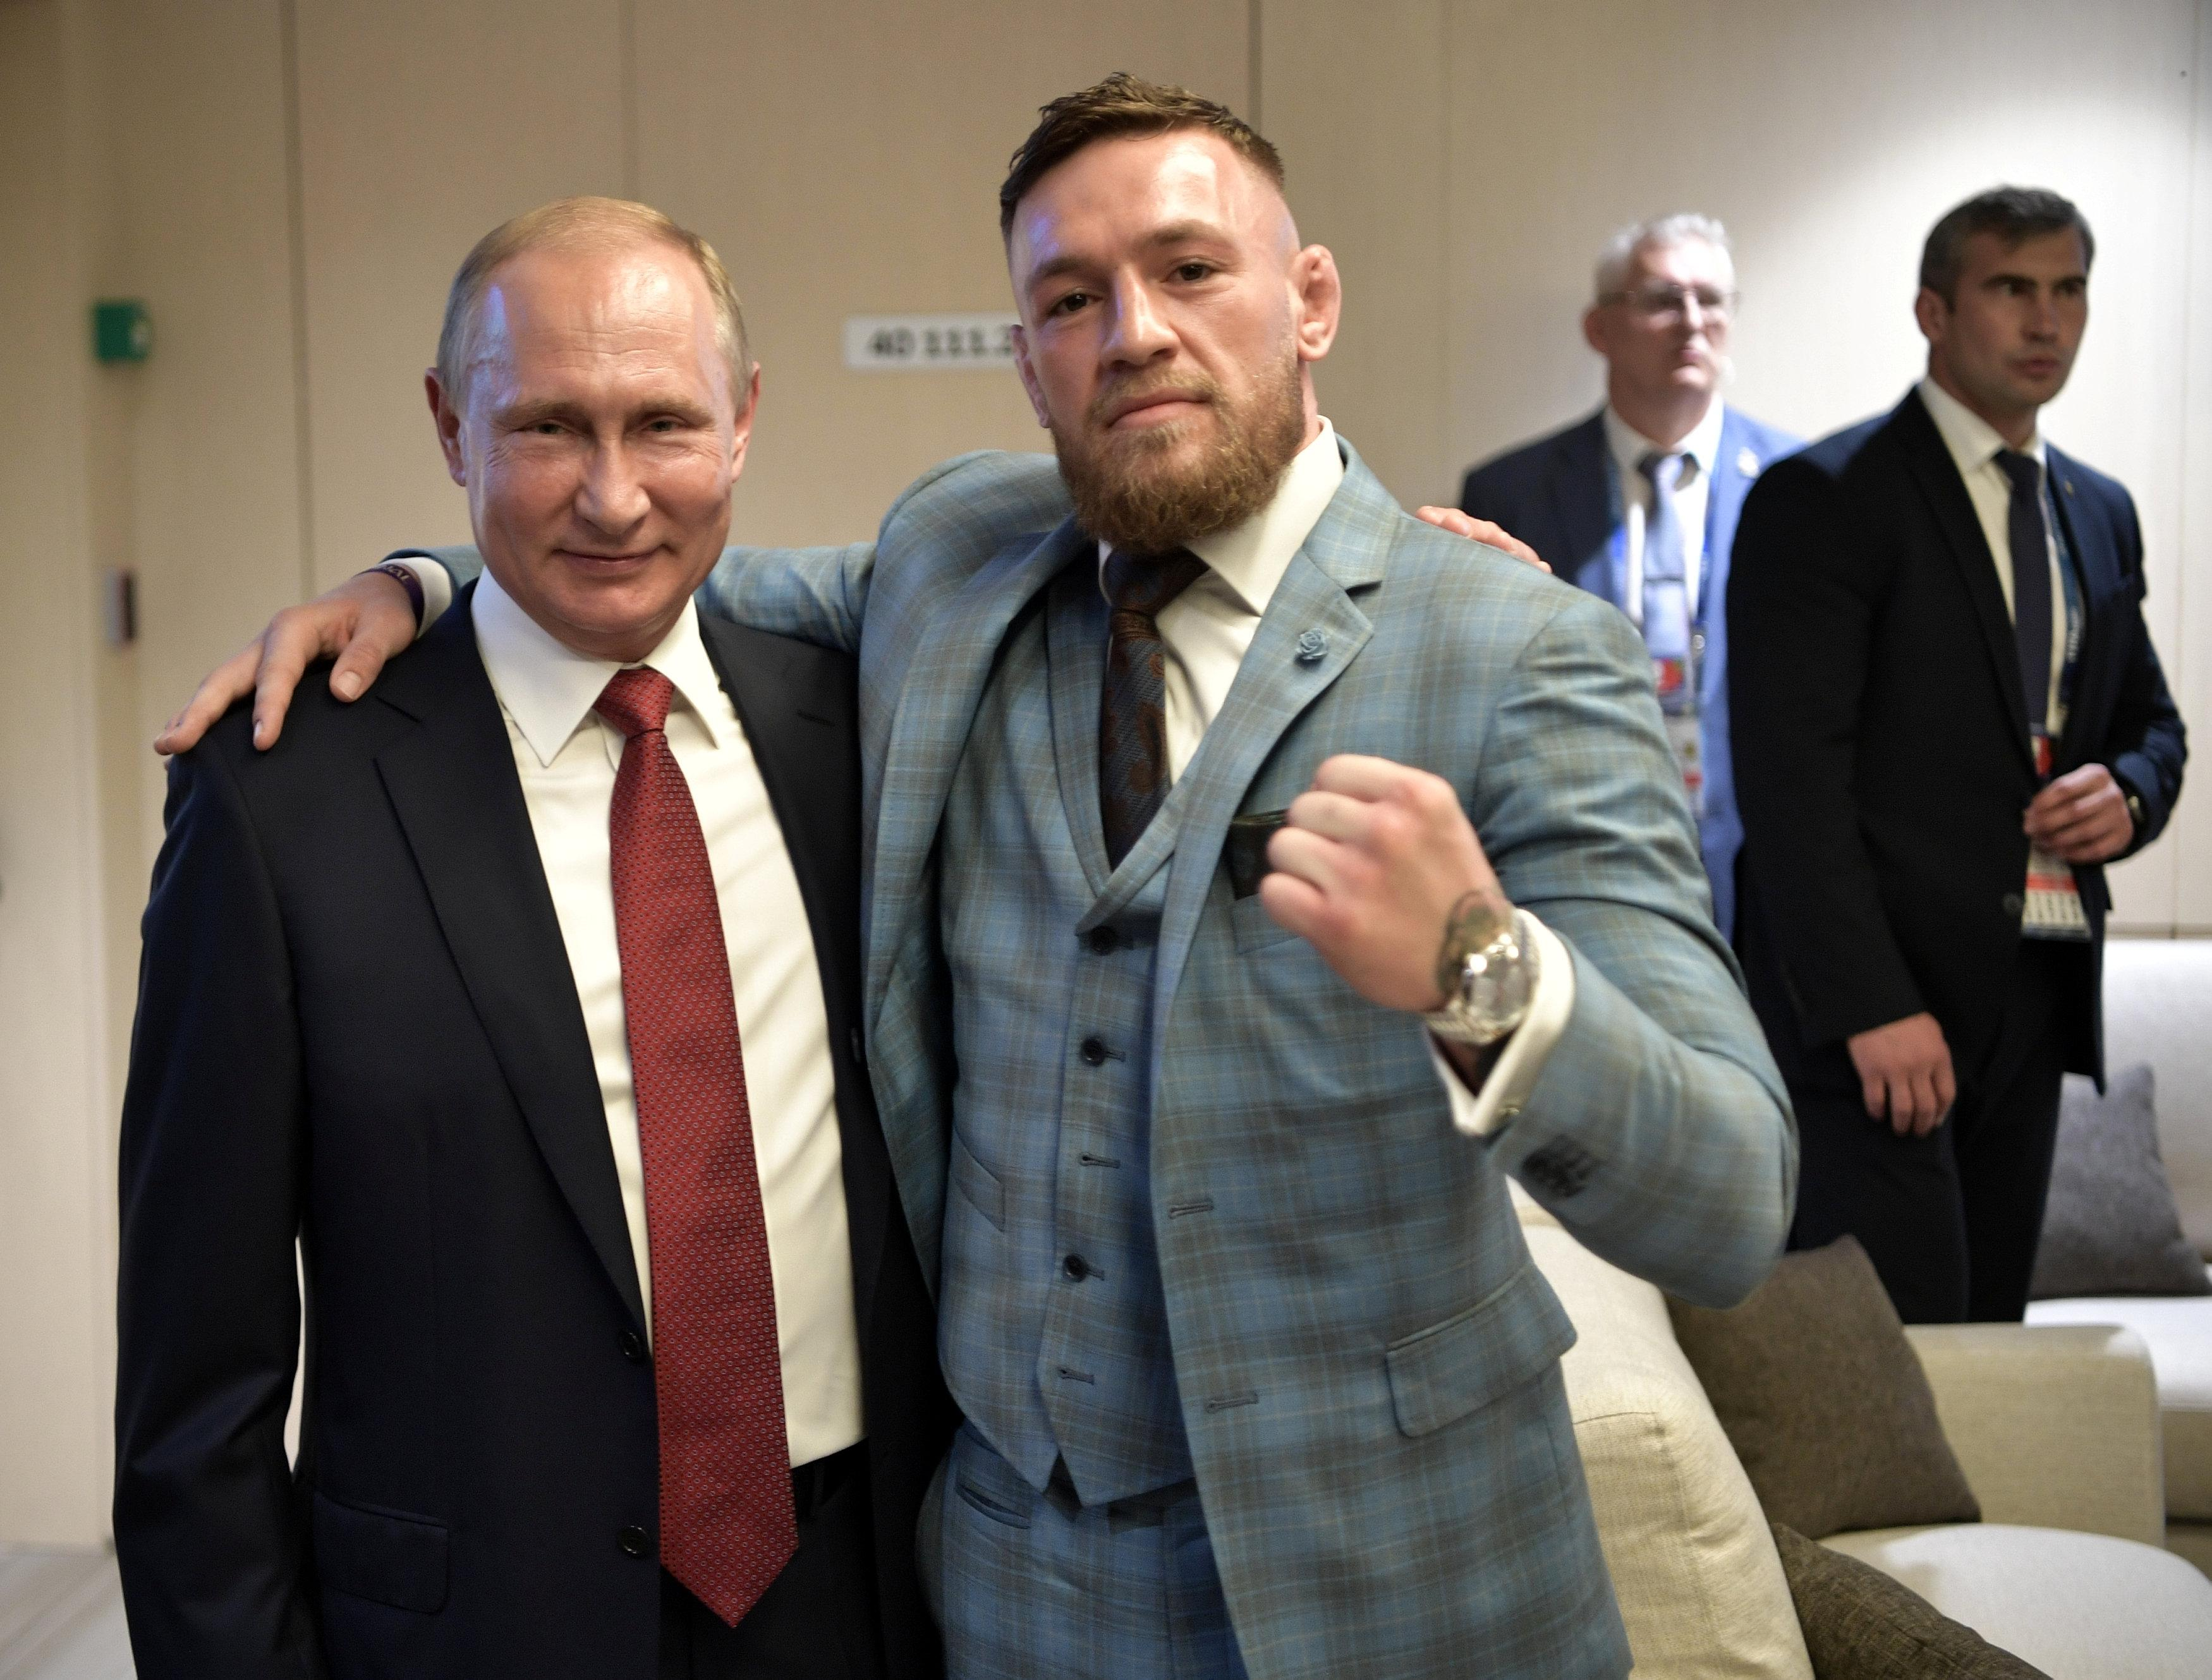 Conor McGregor recently became friends with the Russian leader at the World Cup Final